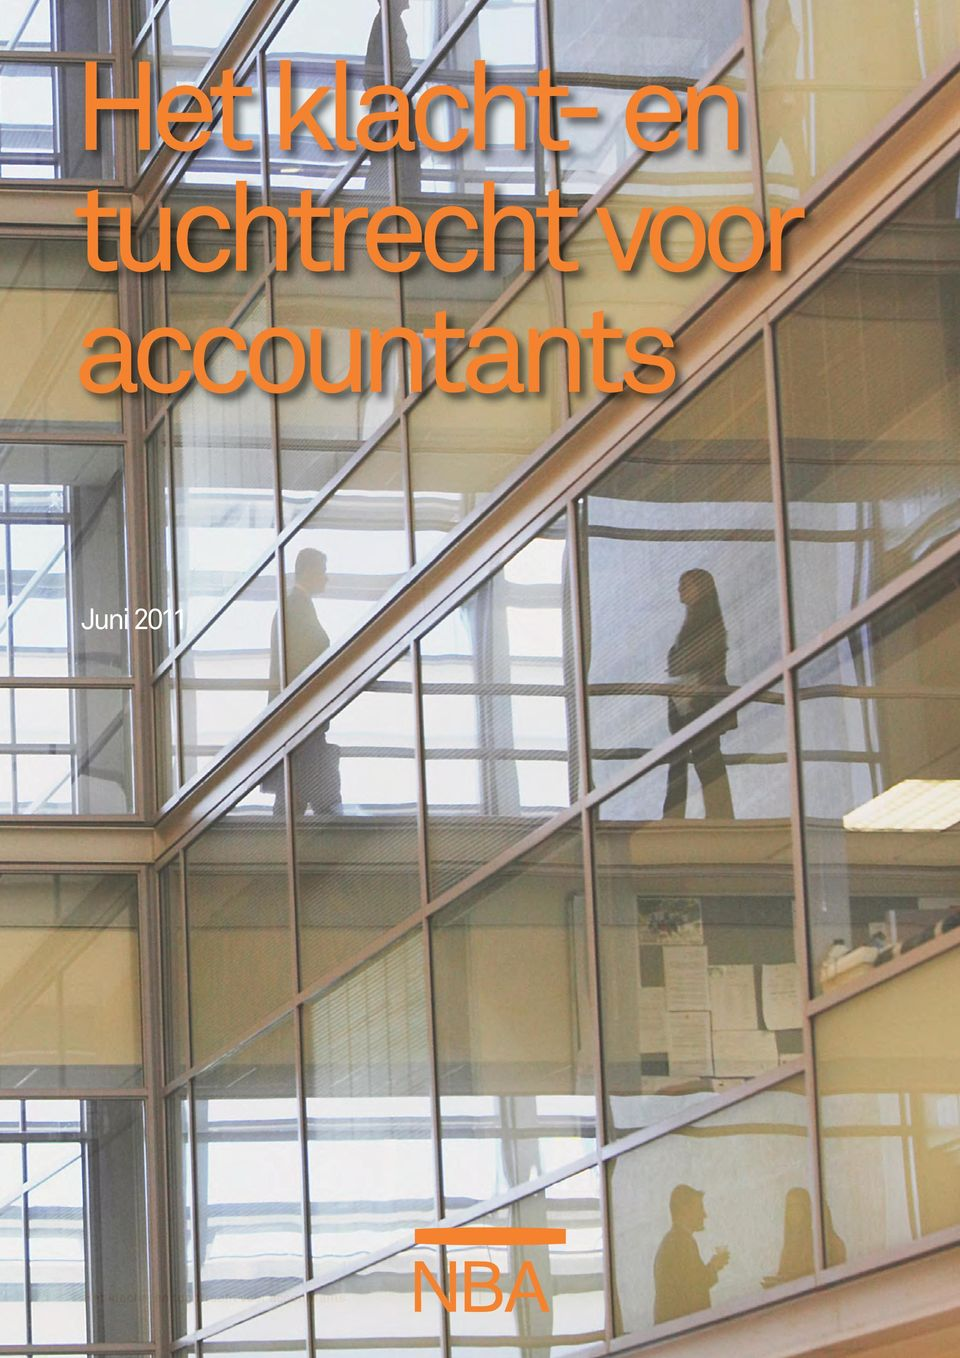 accountants Juni 2011